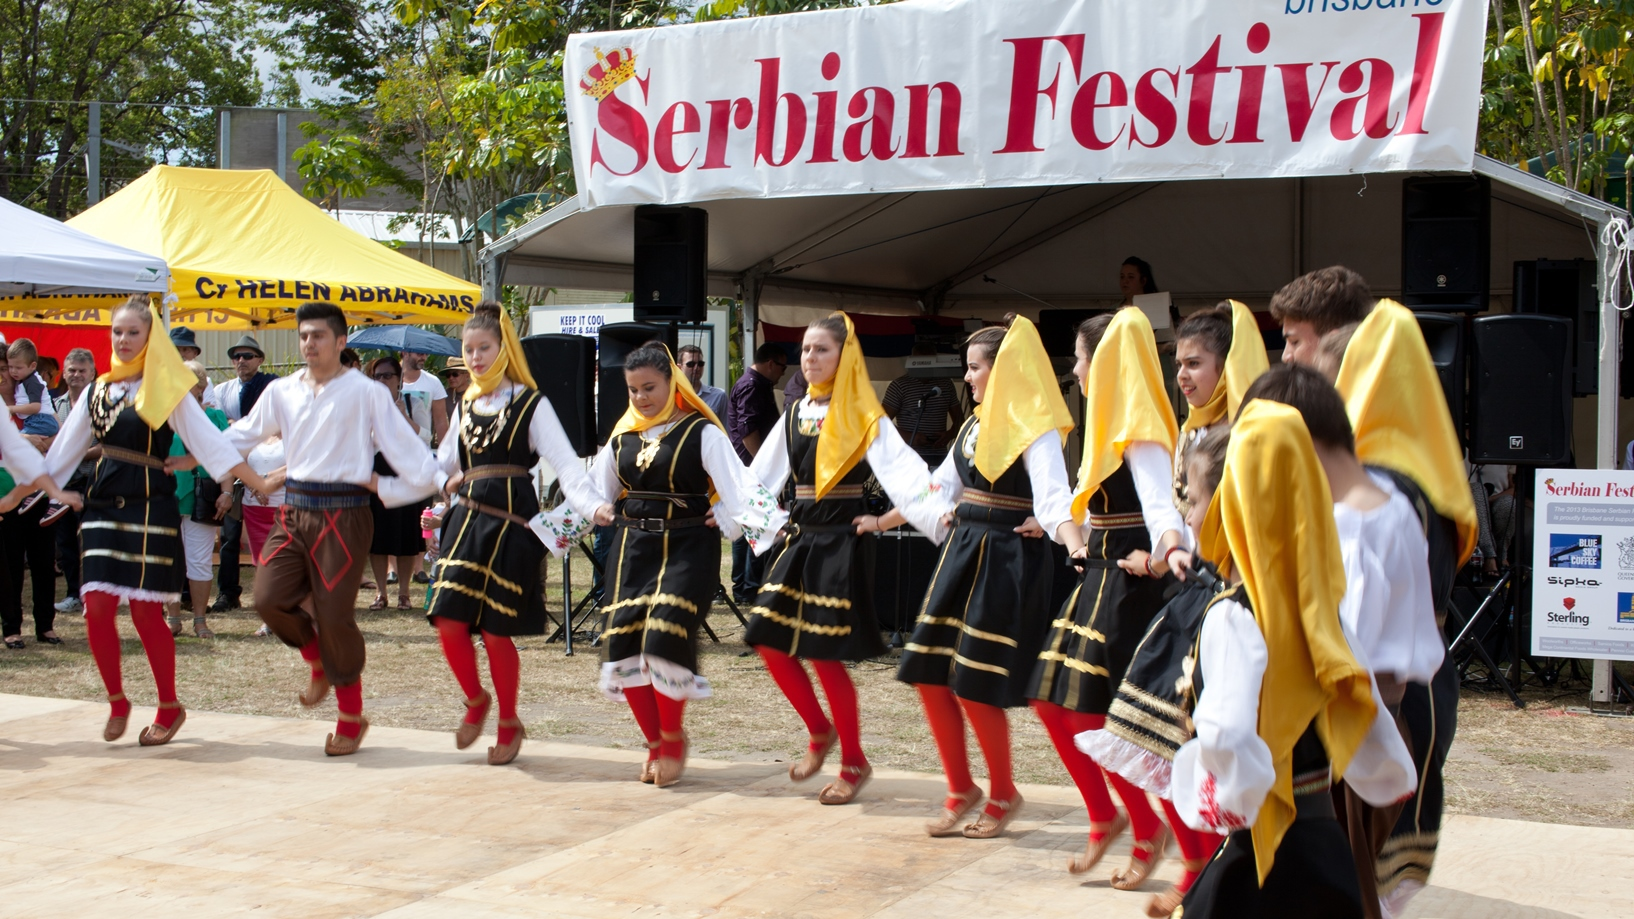 https://www.weekendnotes.com/im/004/00/folk-group-kosovski-bozuri-21.jpg